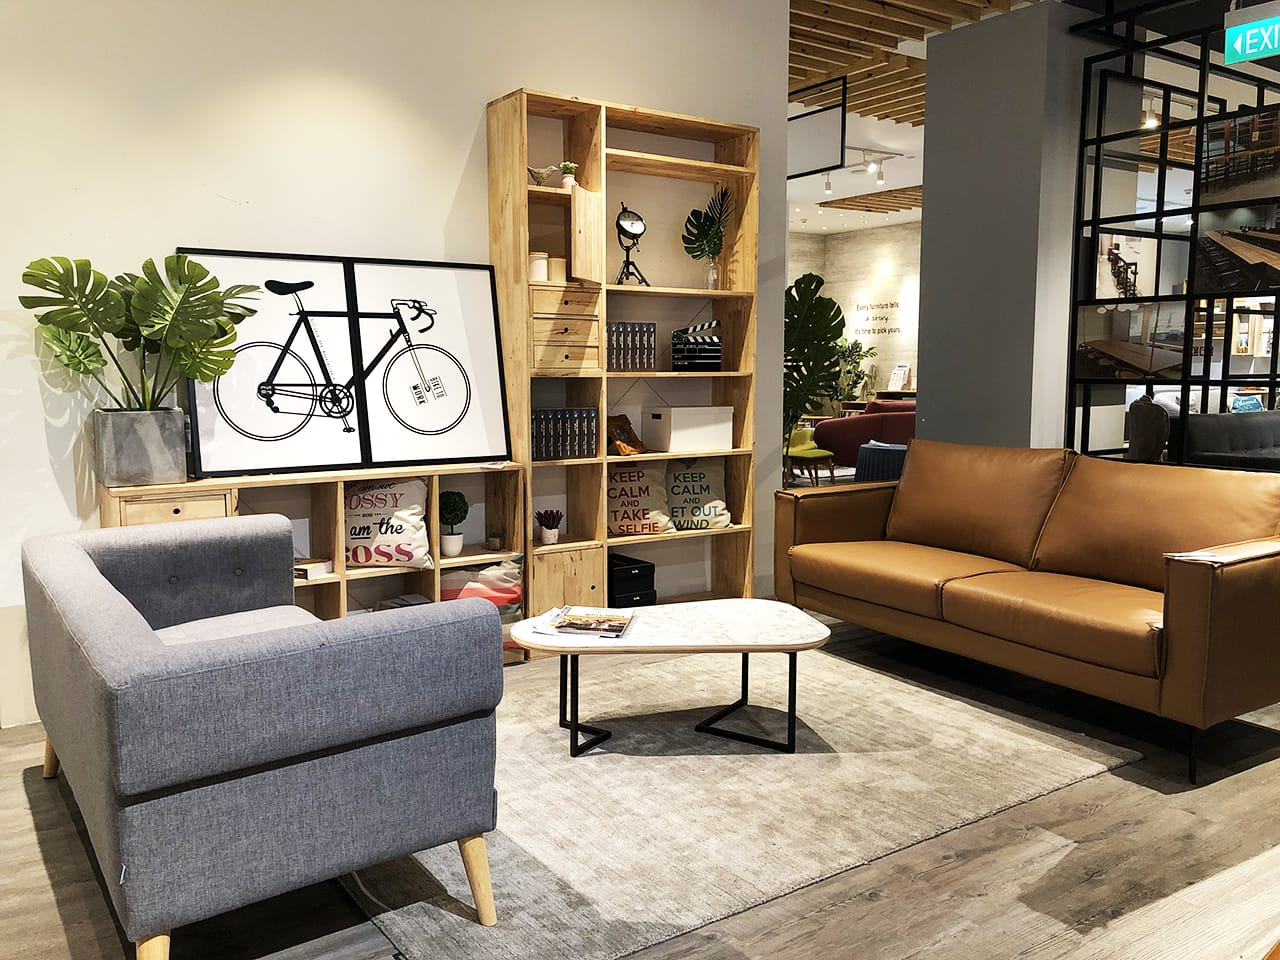 [Marvel 3 Seater Sofa – Half Leather, Sonia 2.5 Seater Sofa, Tree - Monstera H900, Poster – Bicycle, Yoko Shelf 6L - W1200, Yoko Shelf 2x4 &  Ayako Coffee Table – Ov1000]